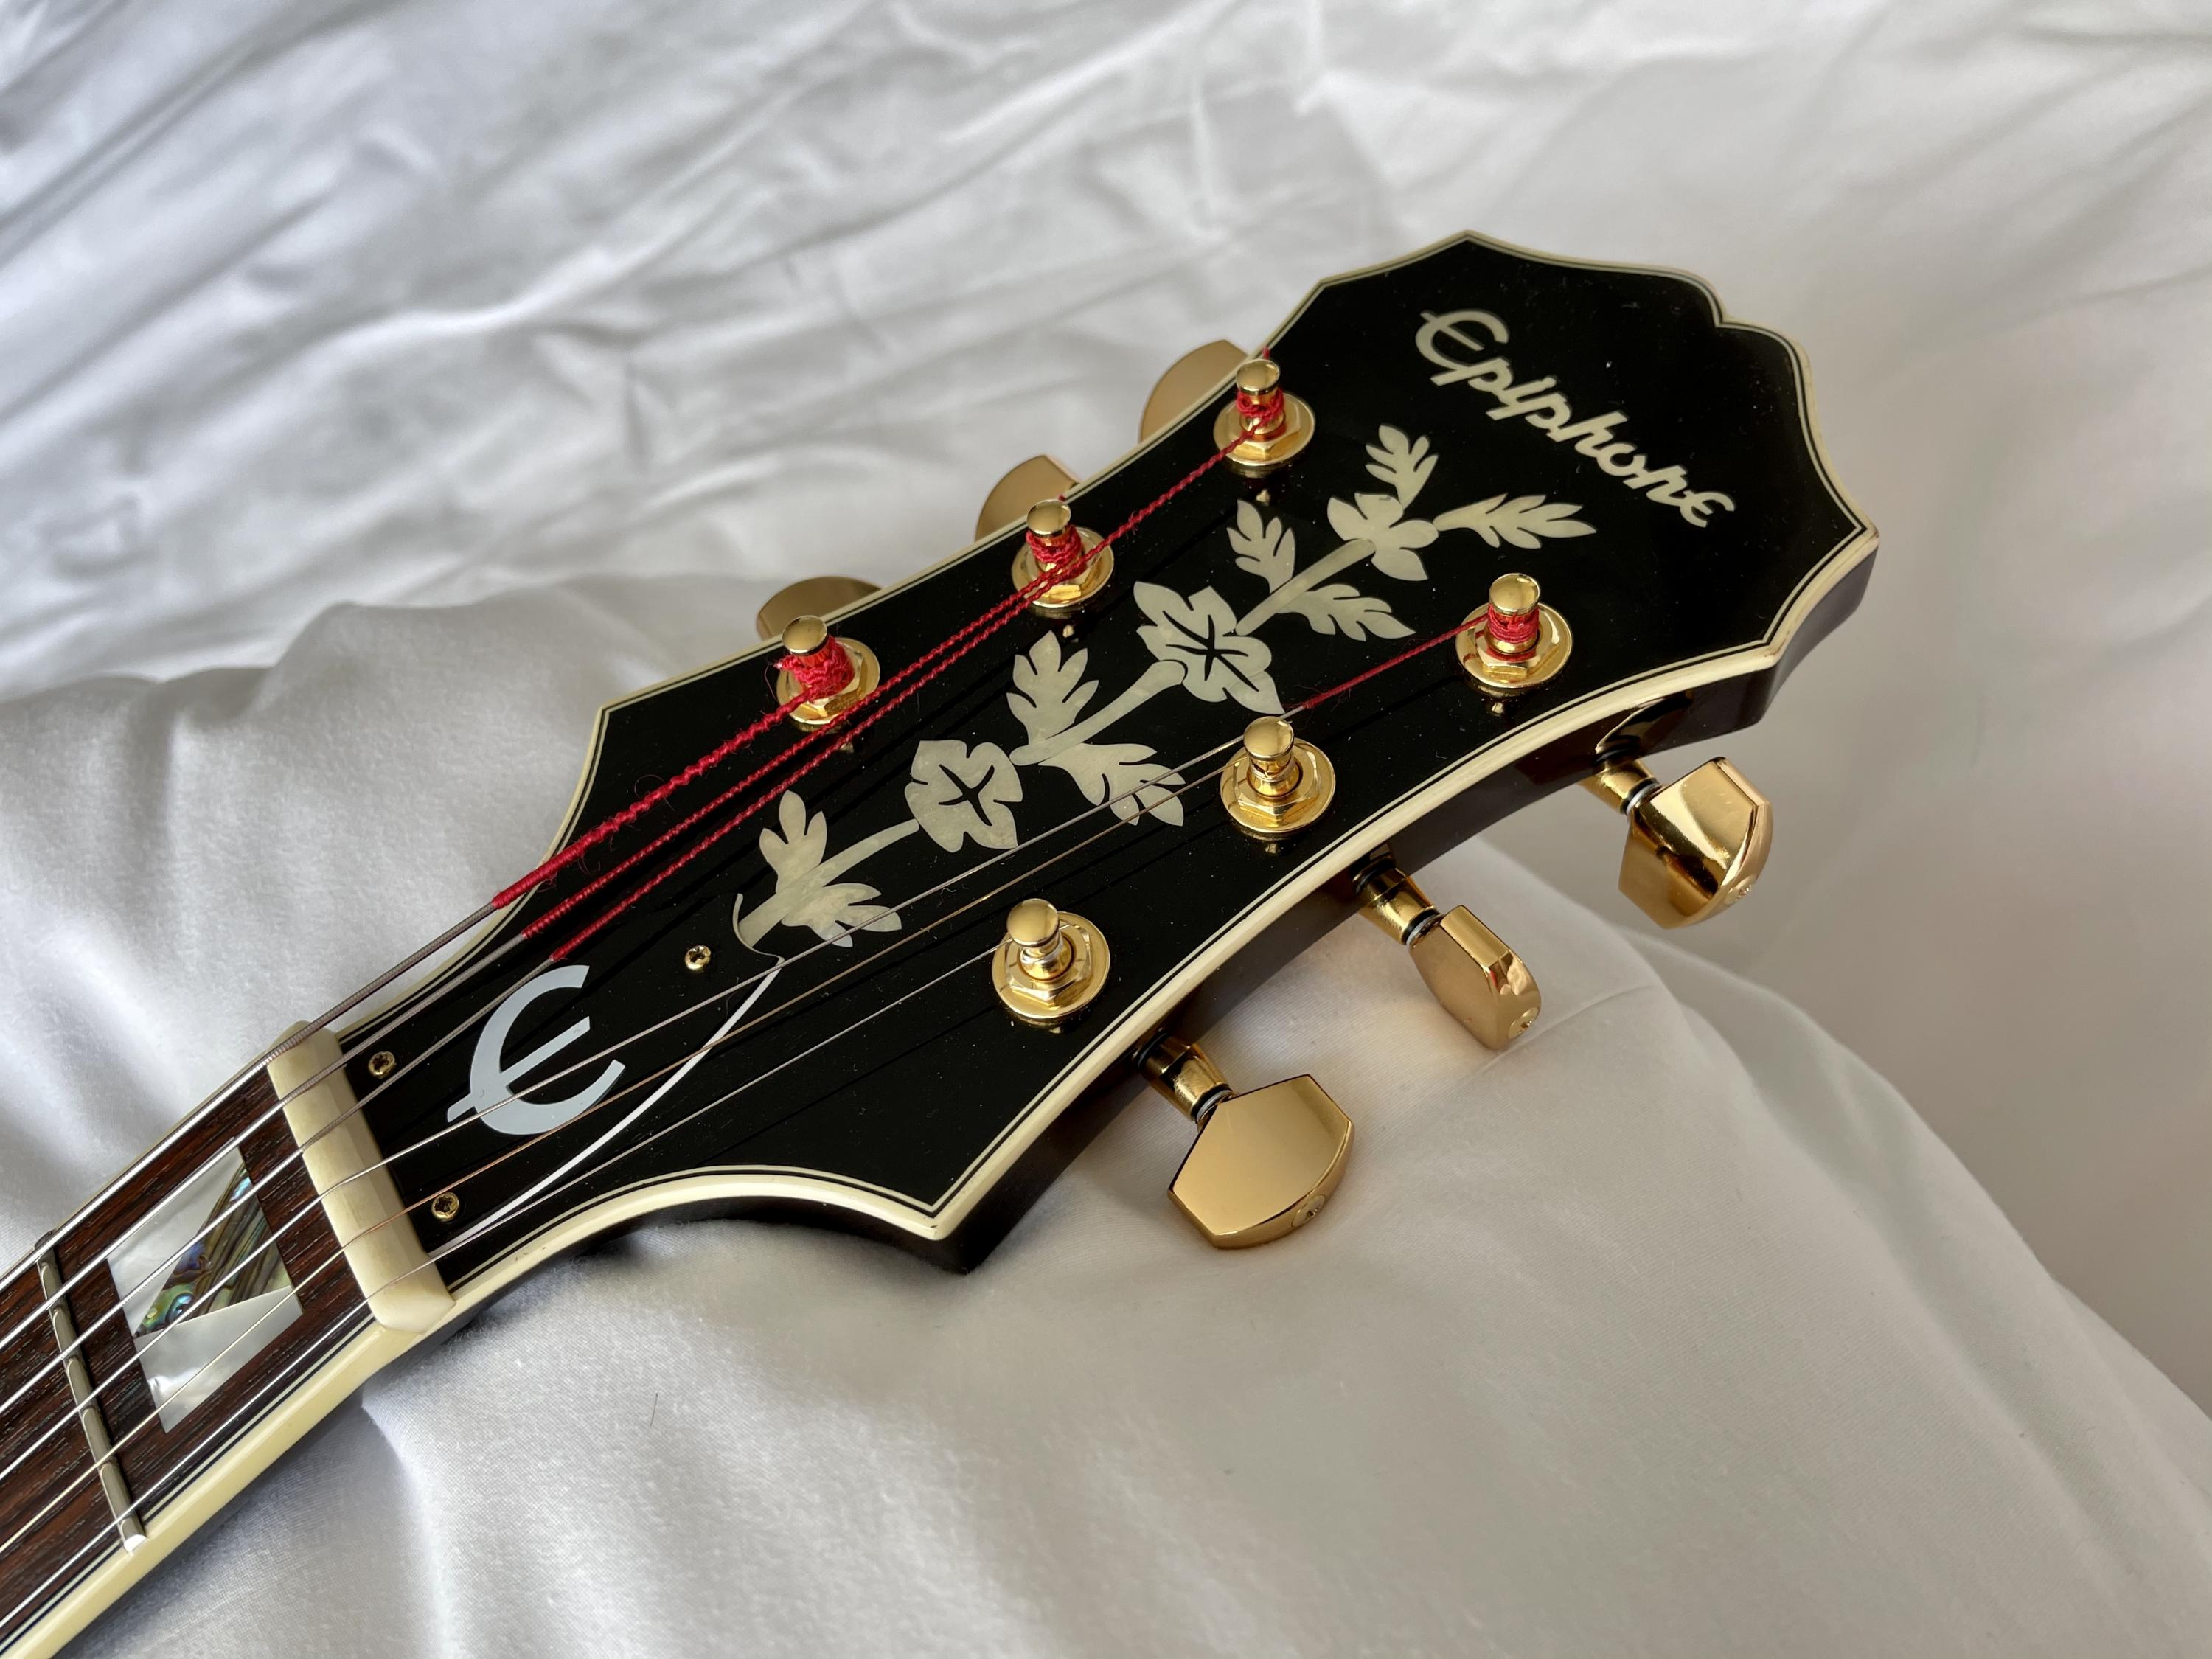 2003 Epiphone Emperor Regent Video added-b3f66056-6b29-4a81-8168-a498db64d42f-jpg